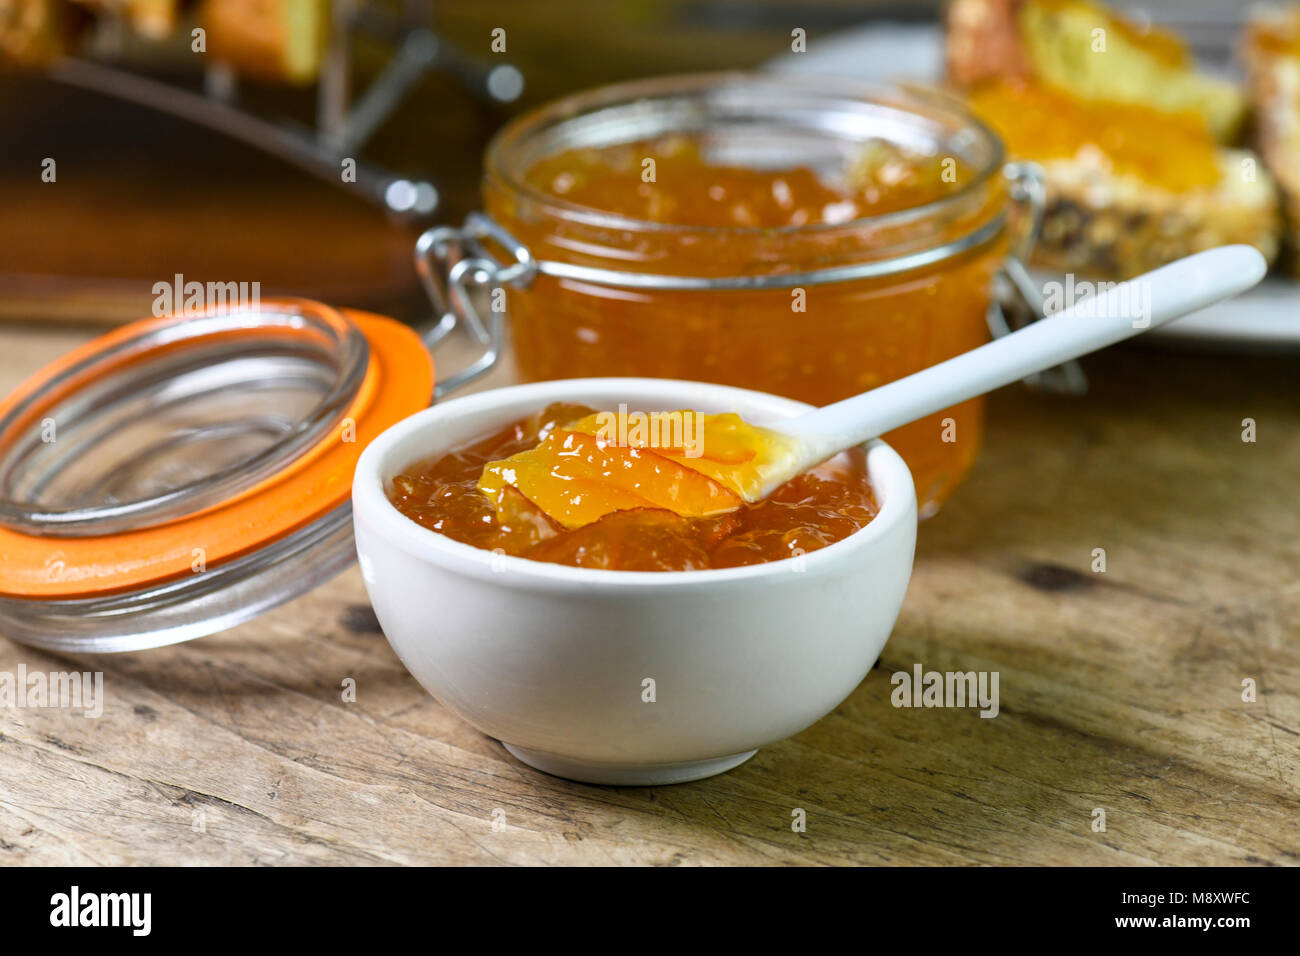 breakfast setting of homemade organic marmalade in a small white dish with larger amount in a preserving jar laid - Stock Image